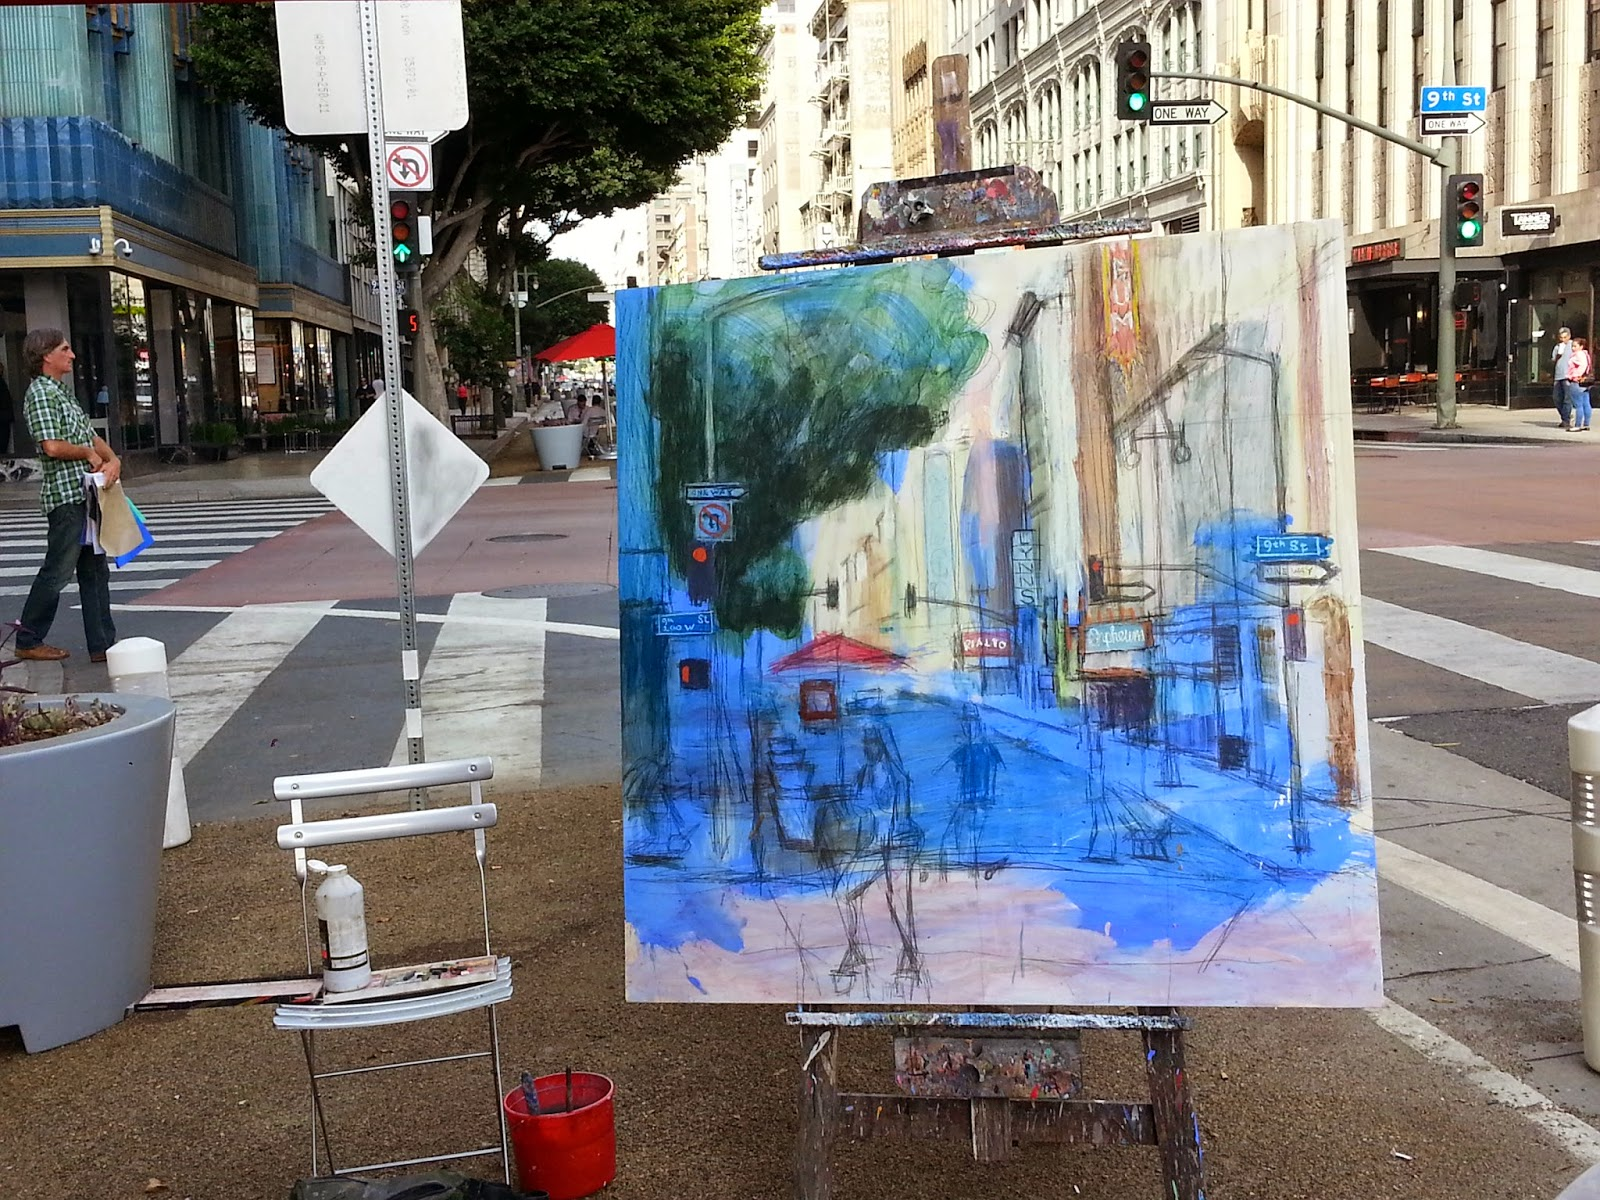 http://www.ebay.com/itm/Alex-Schaefer-John-Kilduff-Plein-Air-Cityscape-Collaboration-Large-48-034-x48-034-/361129537632